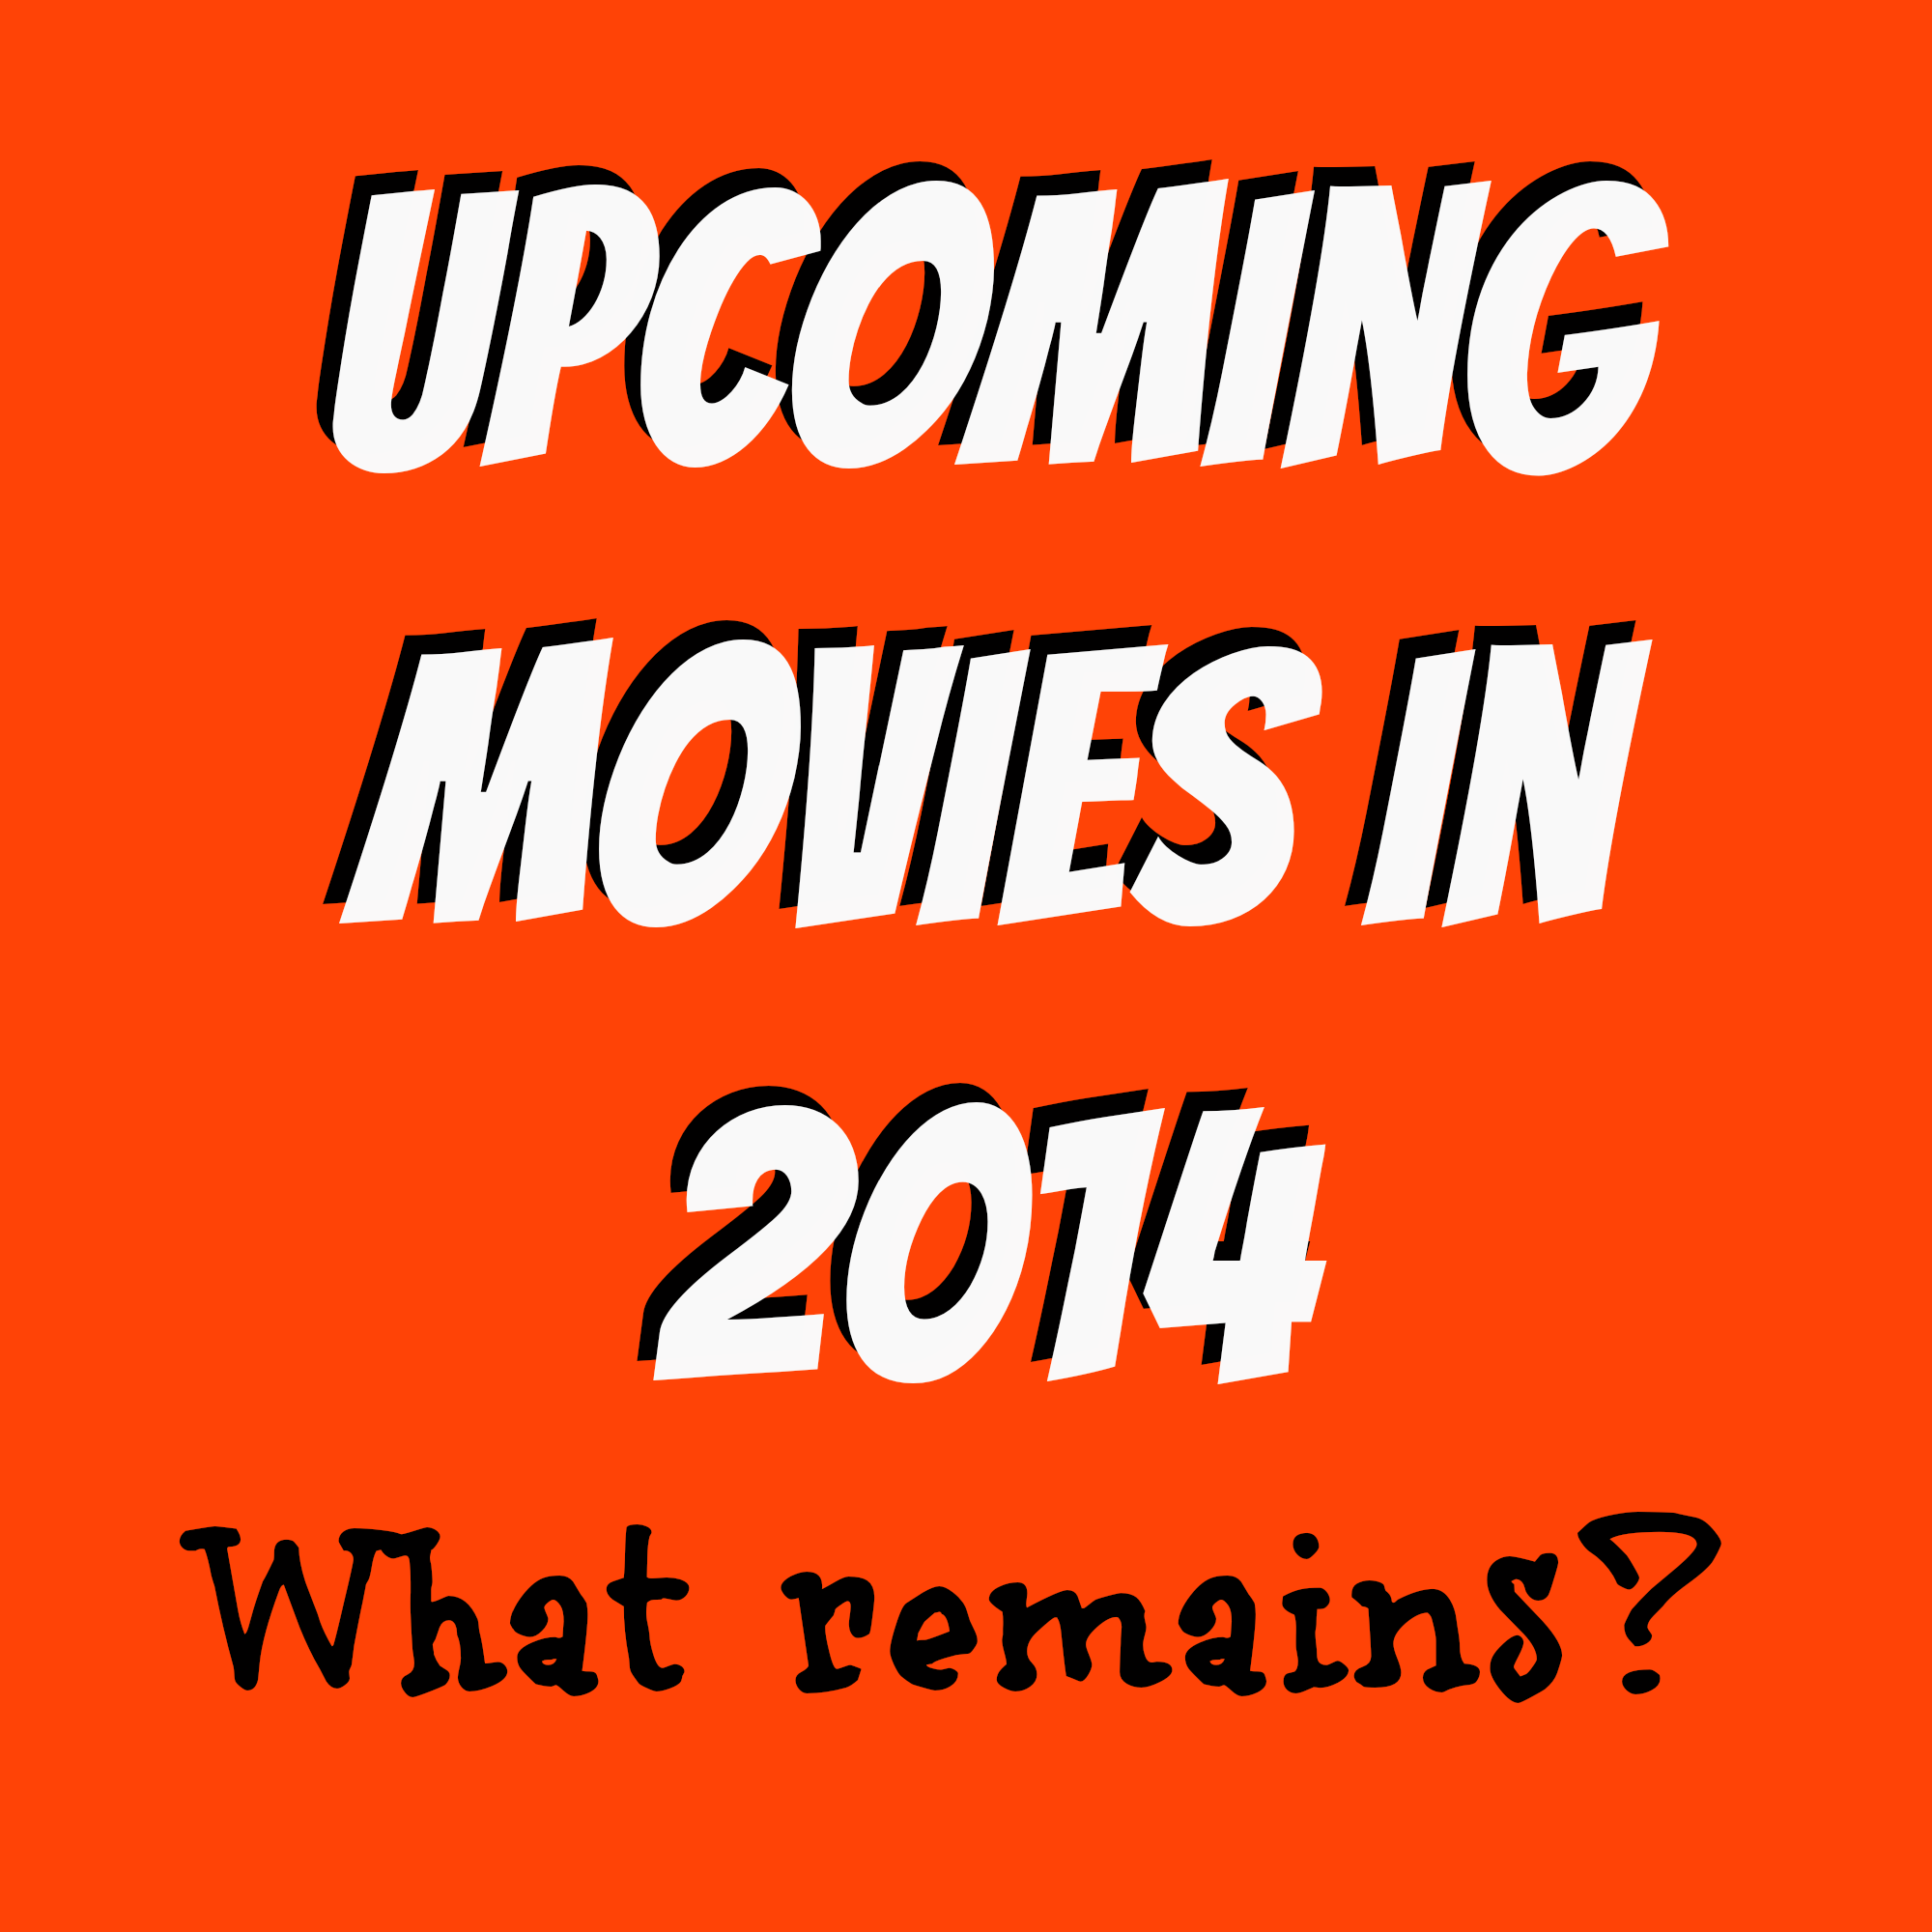 Upcoming movies in 2014